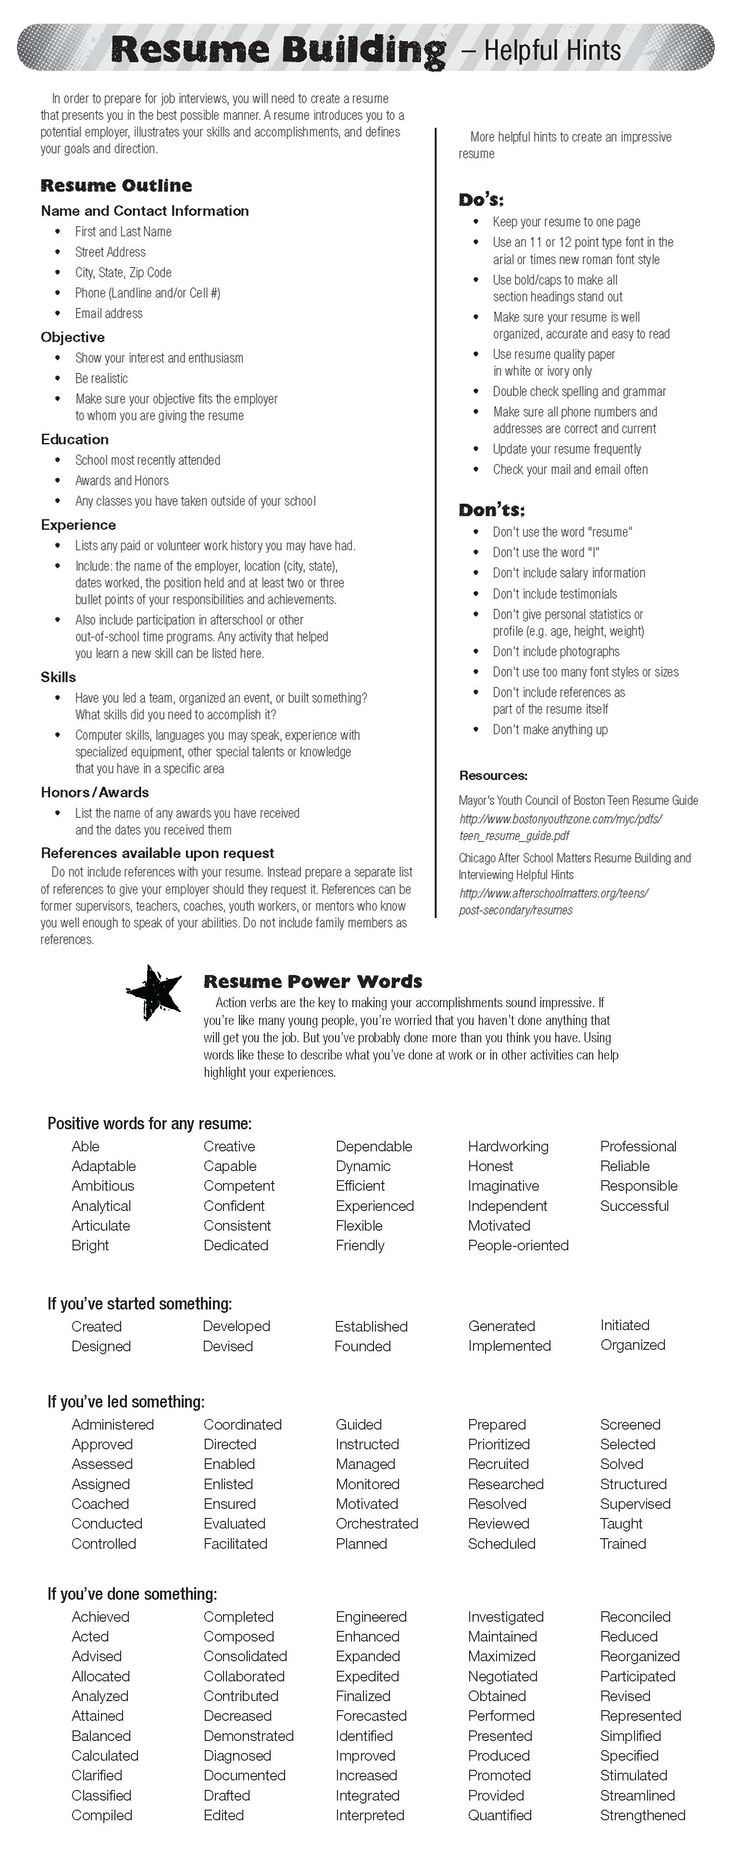 Opposenewapstandardsus  Personable  Ideas About Resume On Pinterest  Cv Format Resume Cv And  With Lovely  Ideas About Resume On Pinterest  Cv Format Resume Cv And Resume Templates With Beauteous What To Put On A Resume Cover Letter Also Free Resume Templates Microsoft Word  In Addition Career Builders Resume And Job Description On Resume As Well As Free Easy Resume Templates Additionally Best Examples Of Resumes From Pinterestcom With Opposenewapstandardsus  Lovely  Ideas About Resume On Pinterest  Cv Format Resume Cv And  With Beauteous  Ideas About Resume On Pinterest  Cv Format Resume Cv And Resume Templates And Personable What To Put On A Resume Cover Letter Also Free Resume Templates Microsoft Word  In Addition Career Builders Resume From Pinterestcom